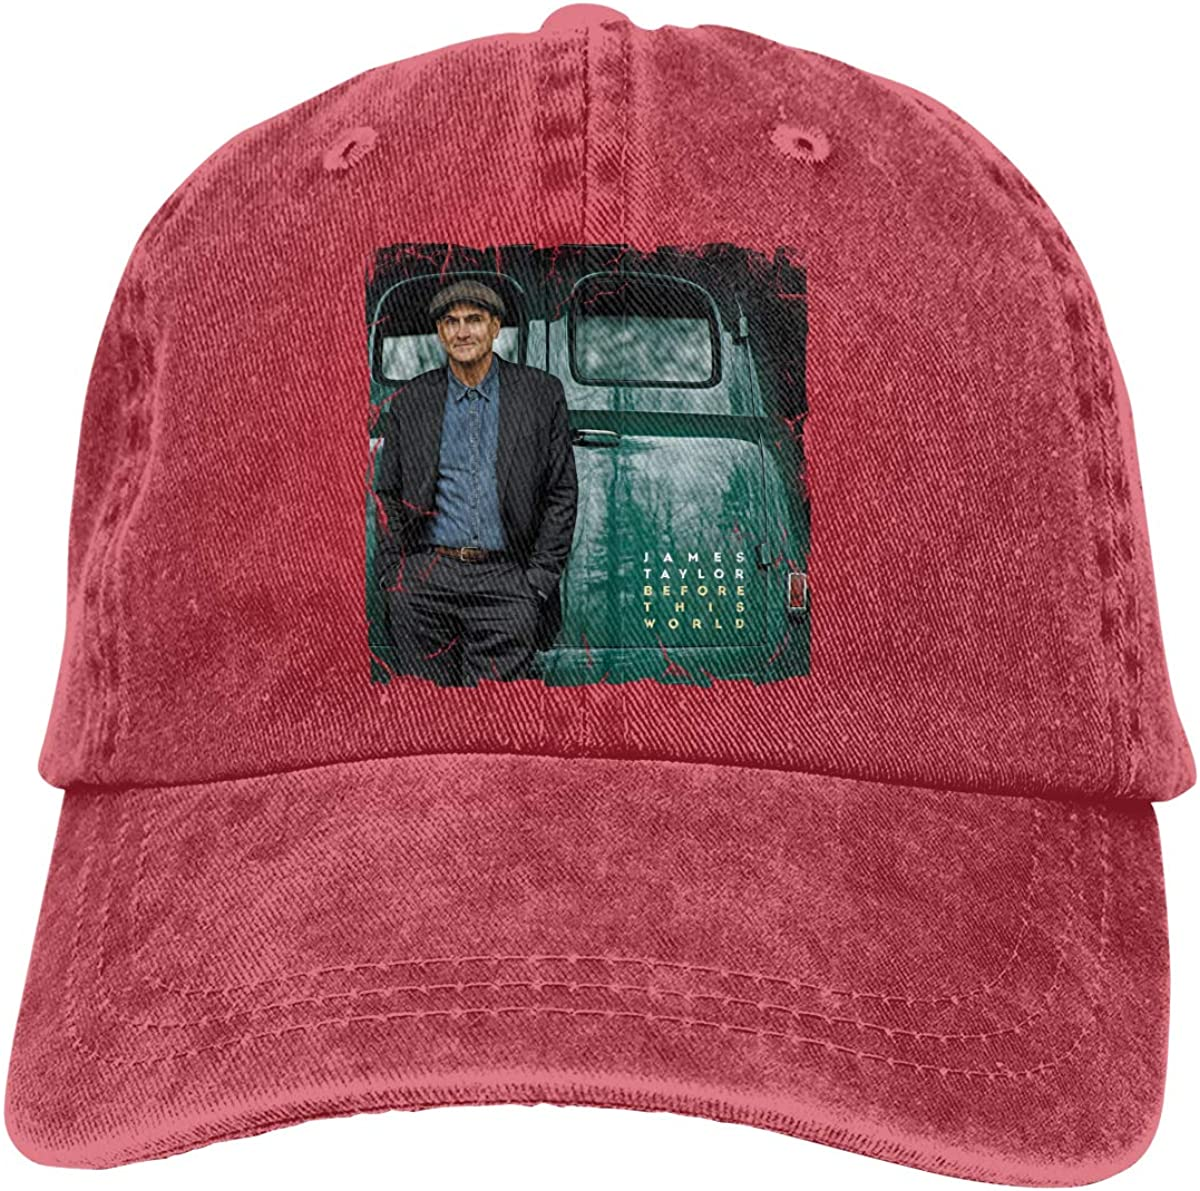 AlvaLynd Woman Mens Dad Hat Unisex James Taylor Before This World Baseball Cap Twill Adjustable